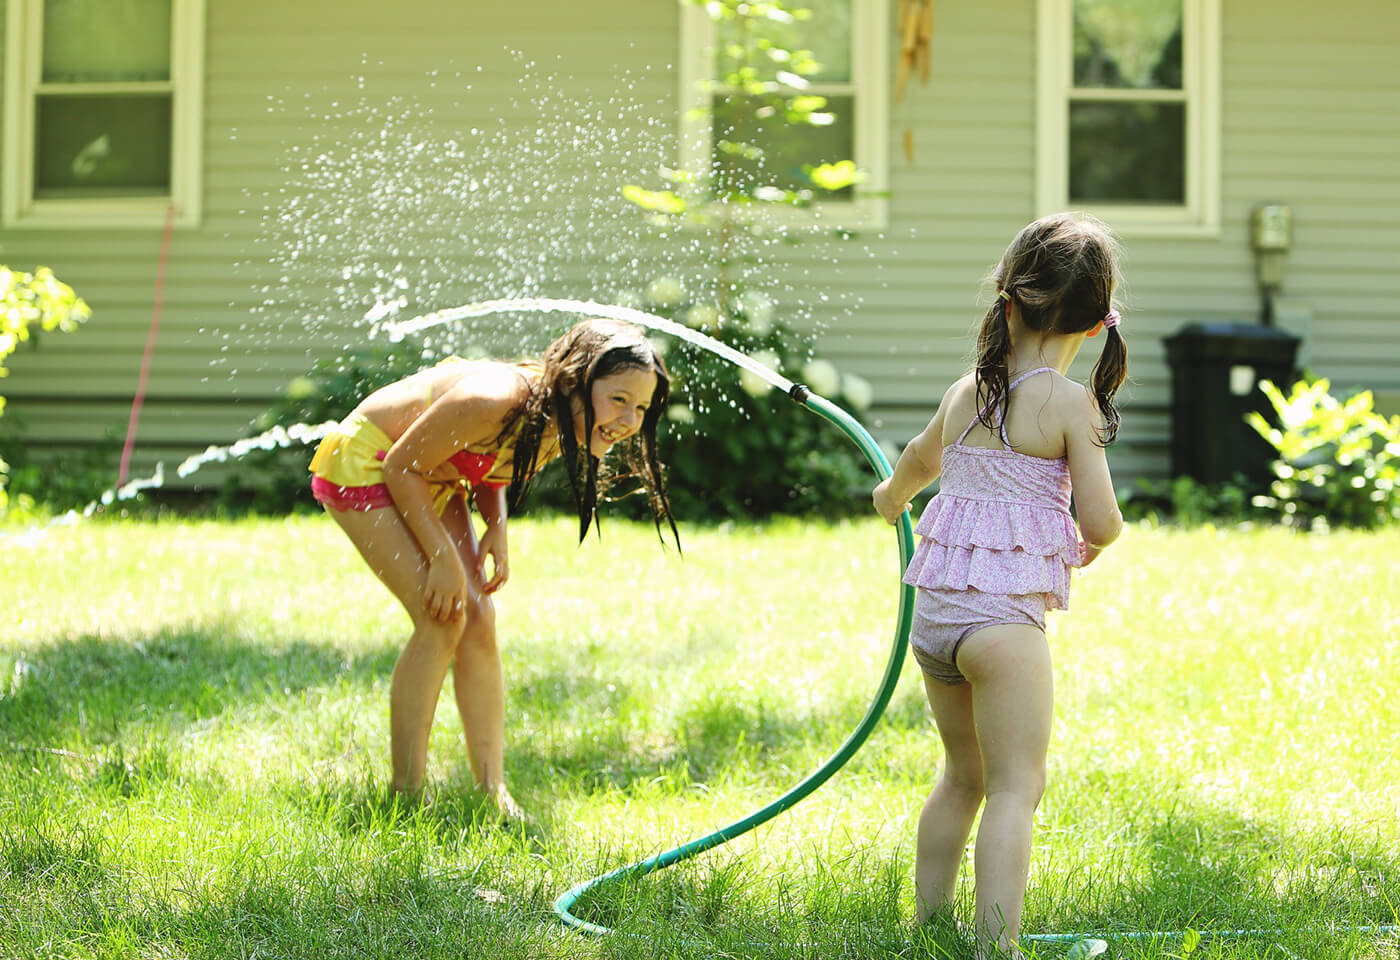 Image of Image of children playing with a water hose